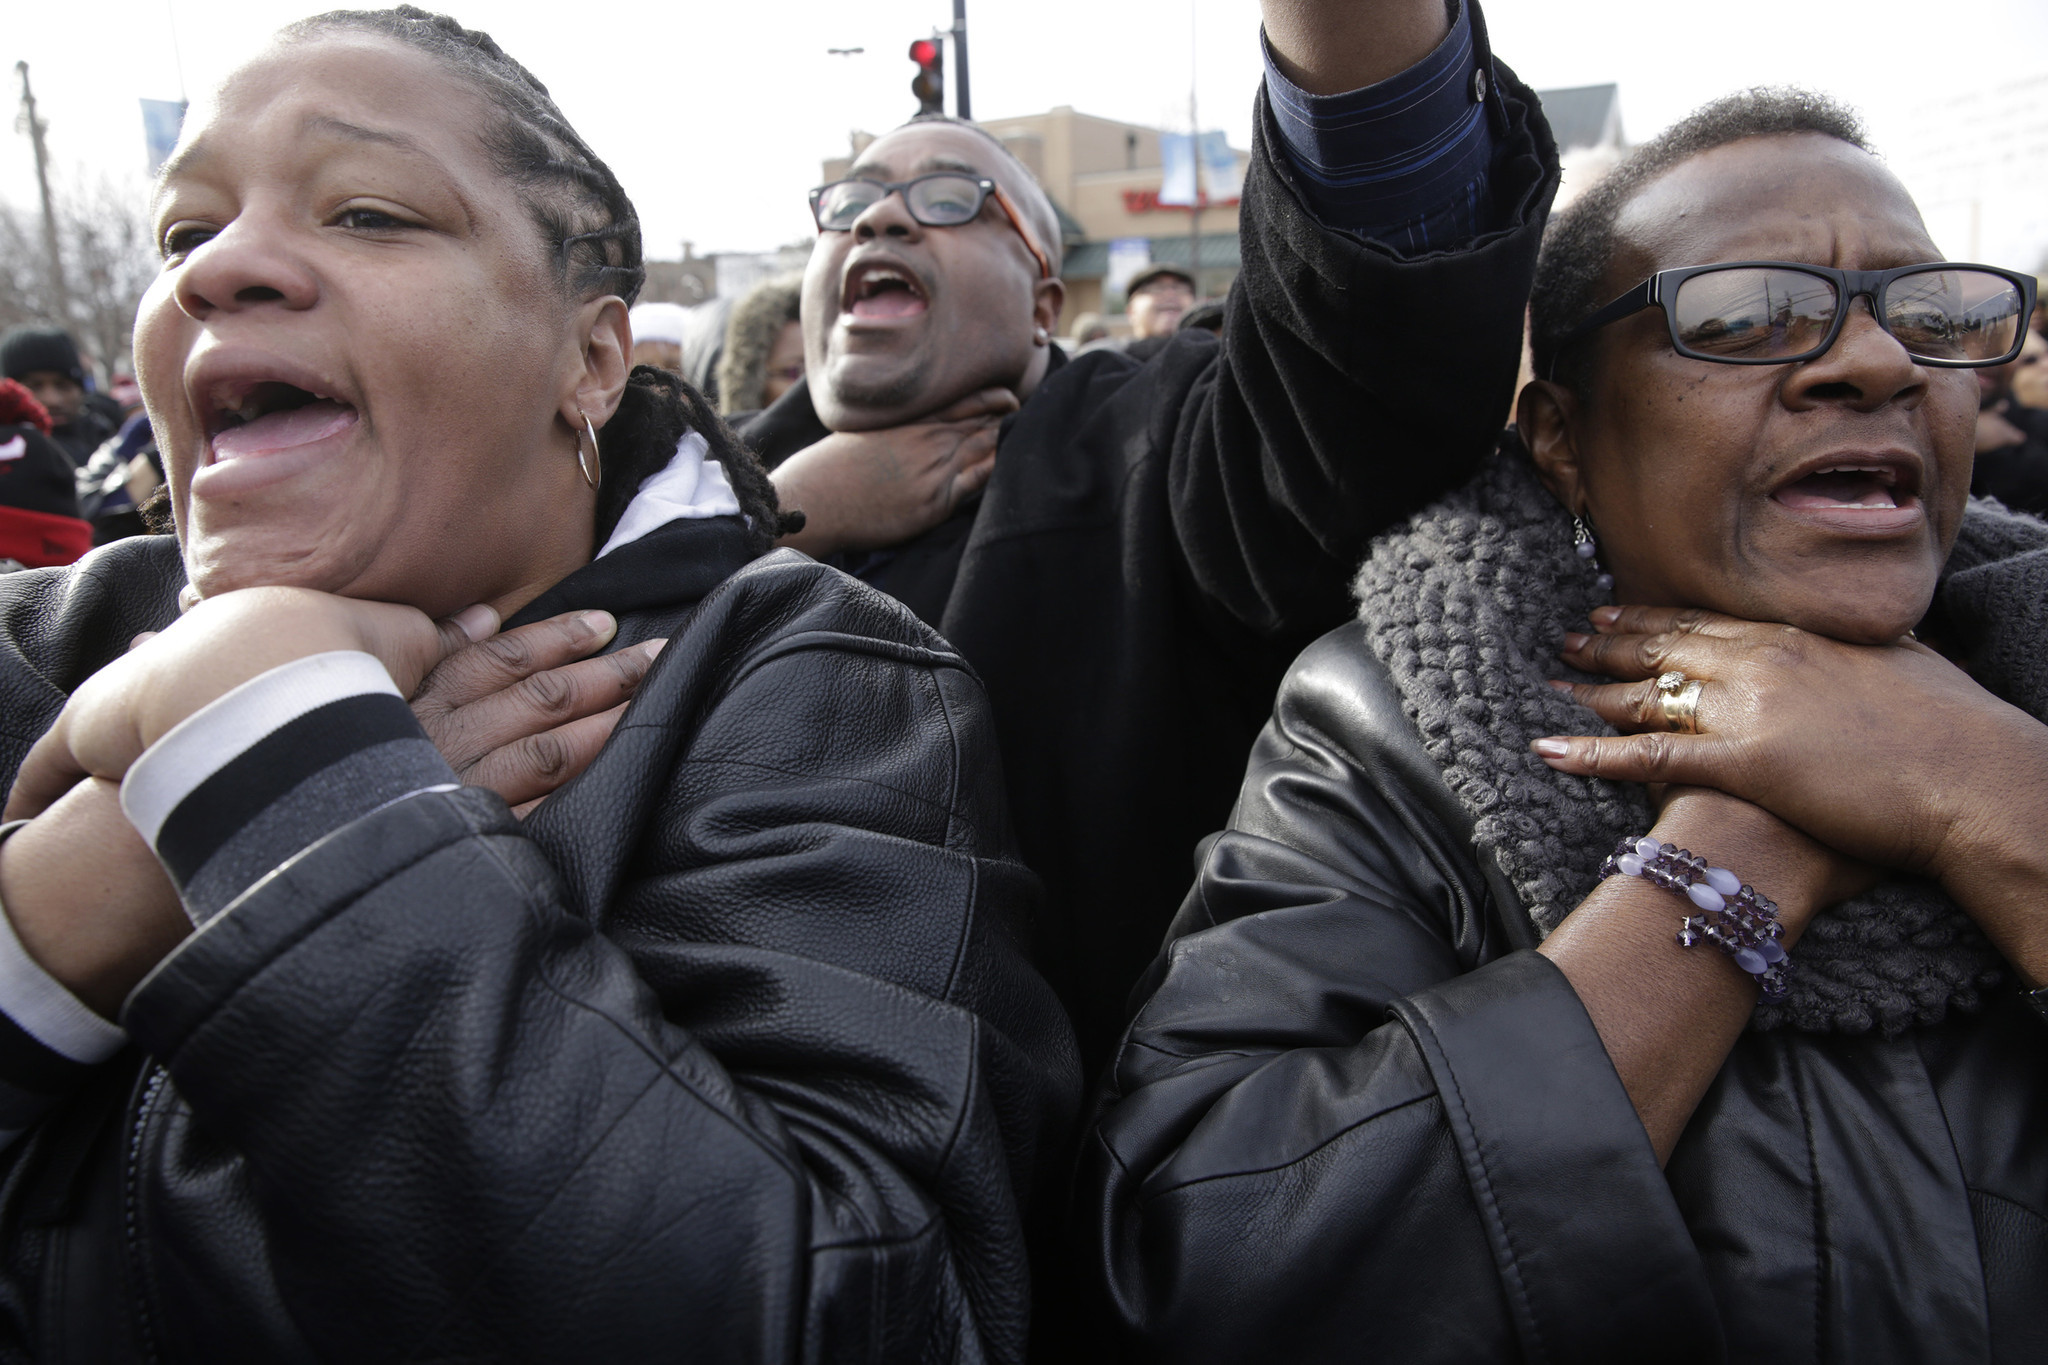 Chicago pastors lead protests over deaths by police in Ferguson, NYC